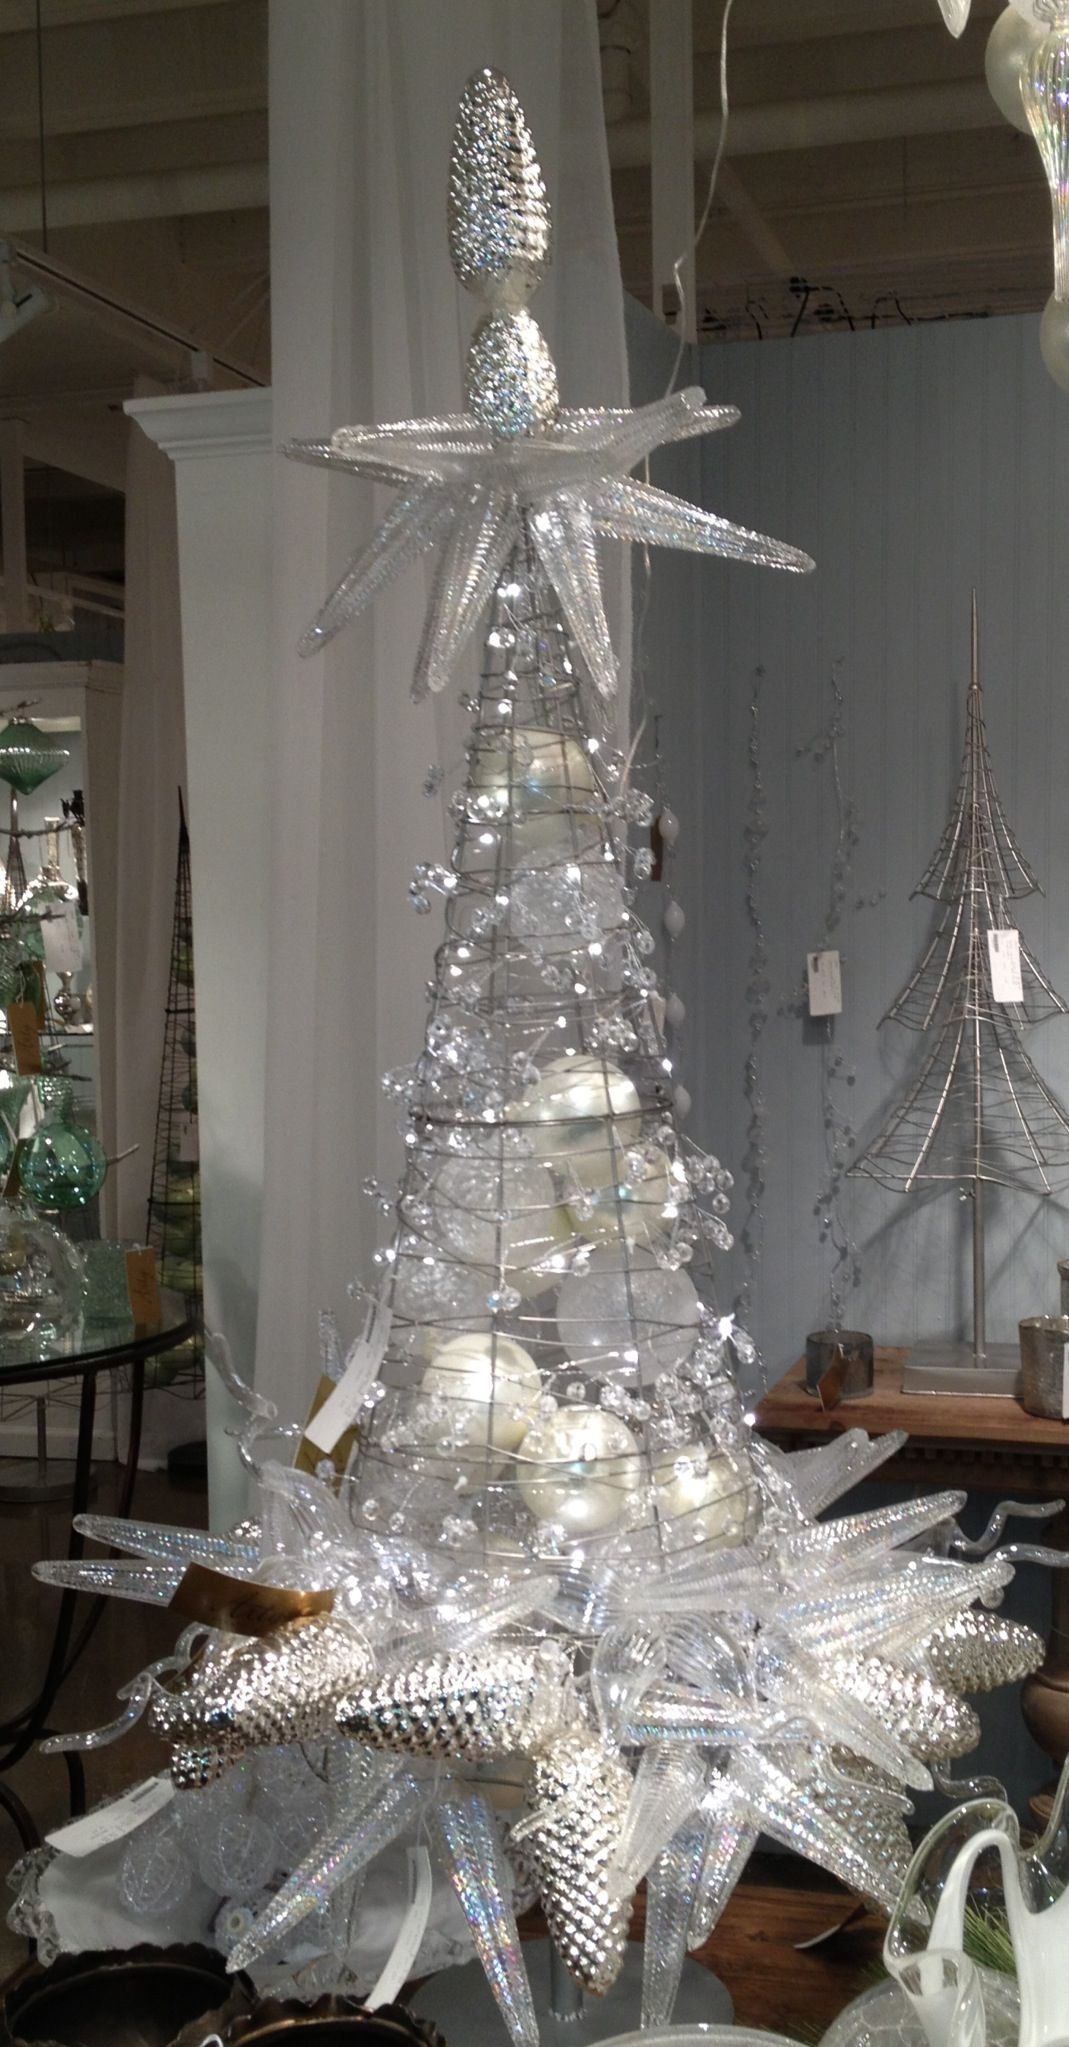 Glass ornament Christmas tree......this looks like one of those ...